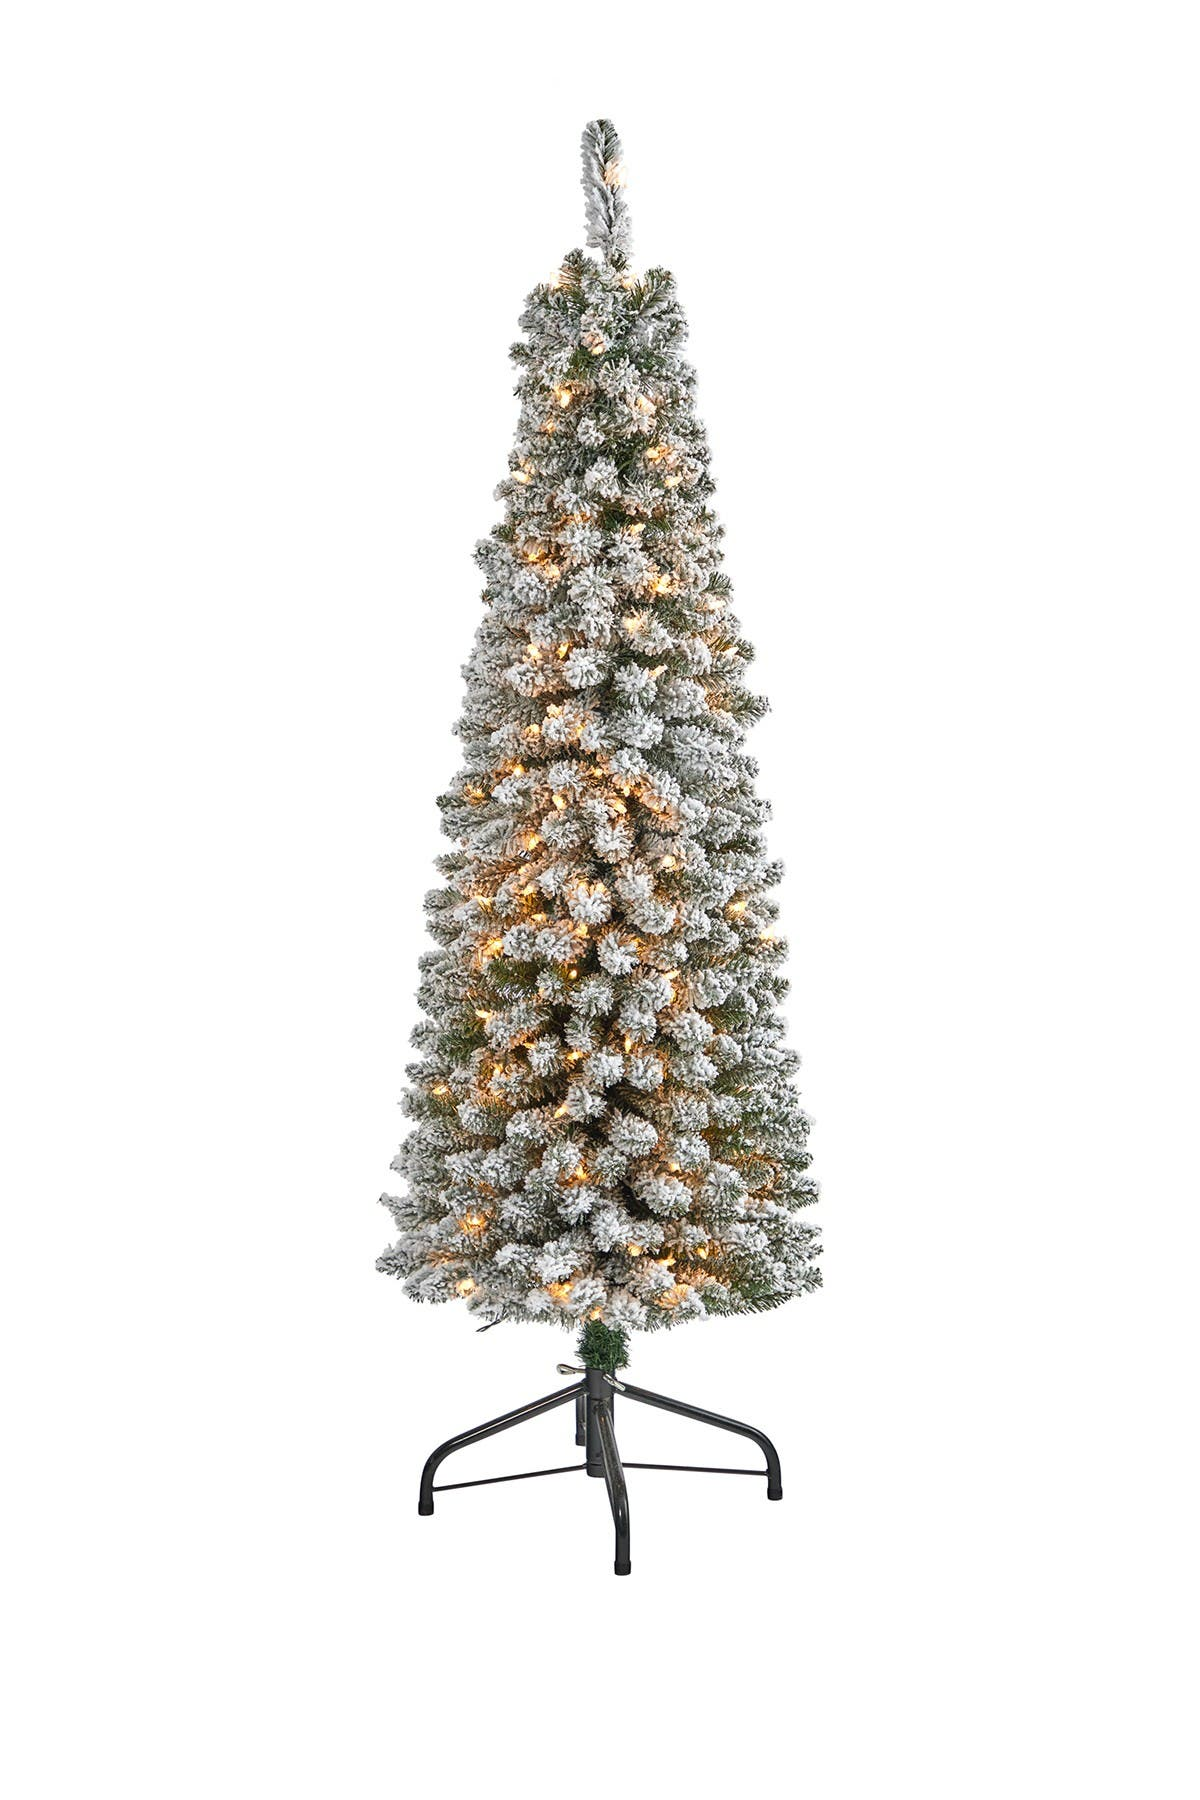 Image of NEARLY NATURAL 5ft. Flocked Pencil Artificial Christmas Tree with 200 Clear Lights